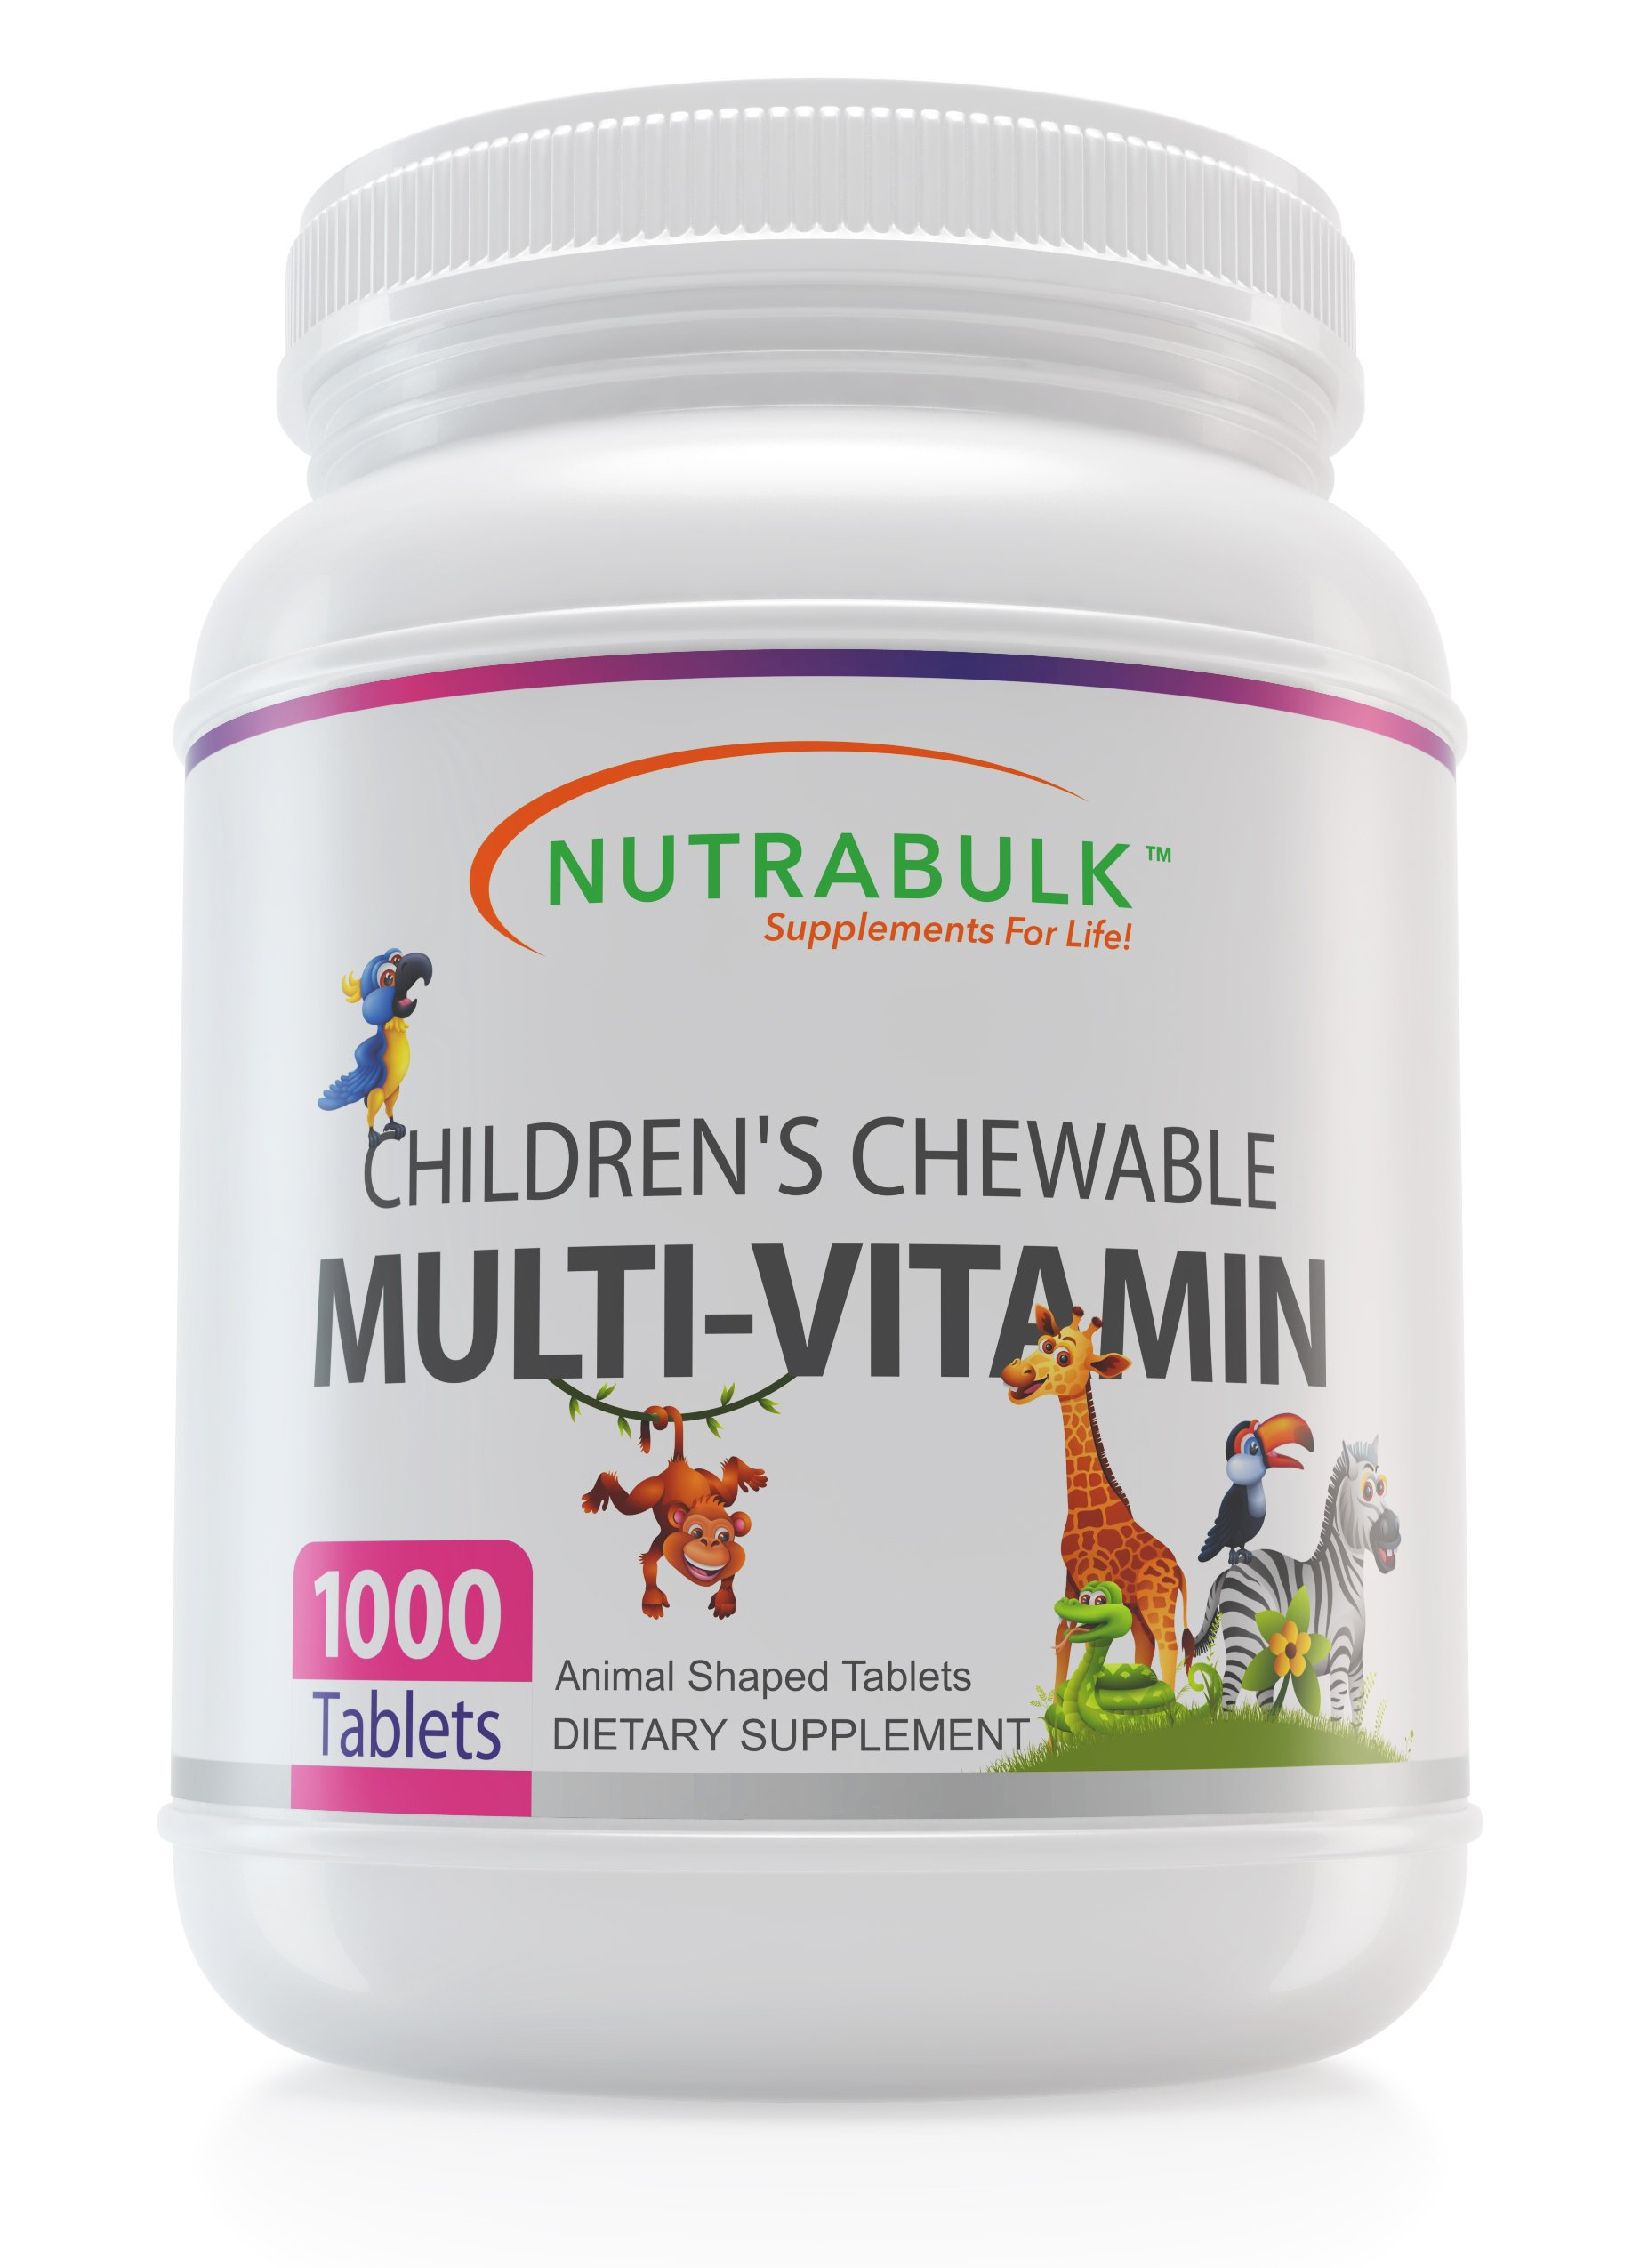 Children's Chewable Multi-Vitamin 1000 Count